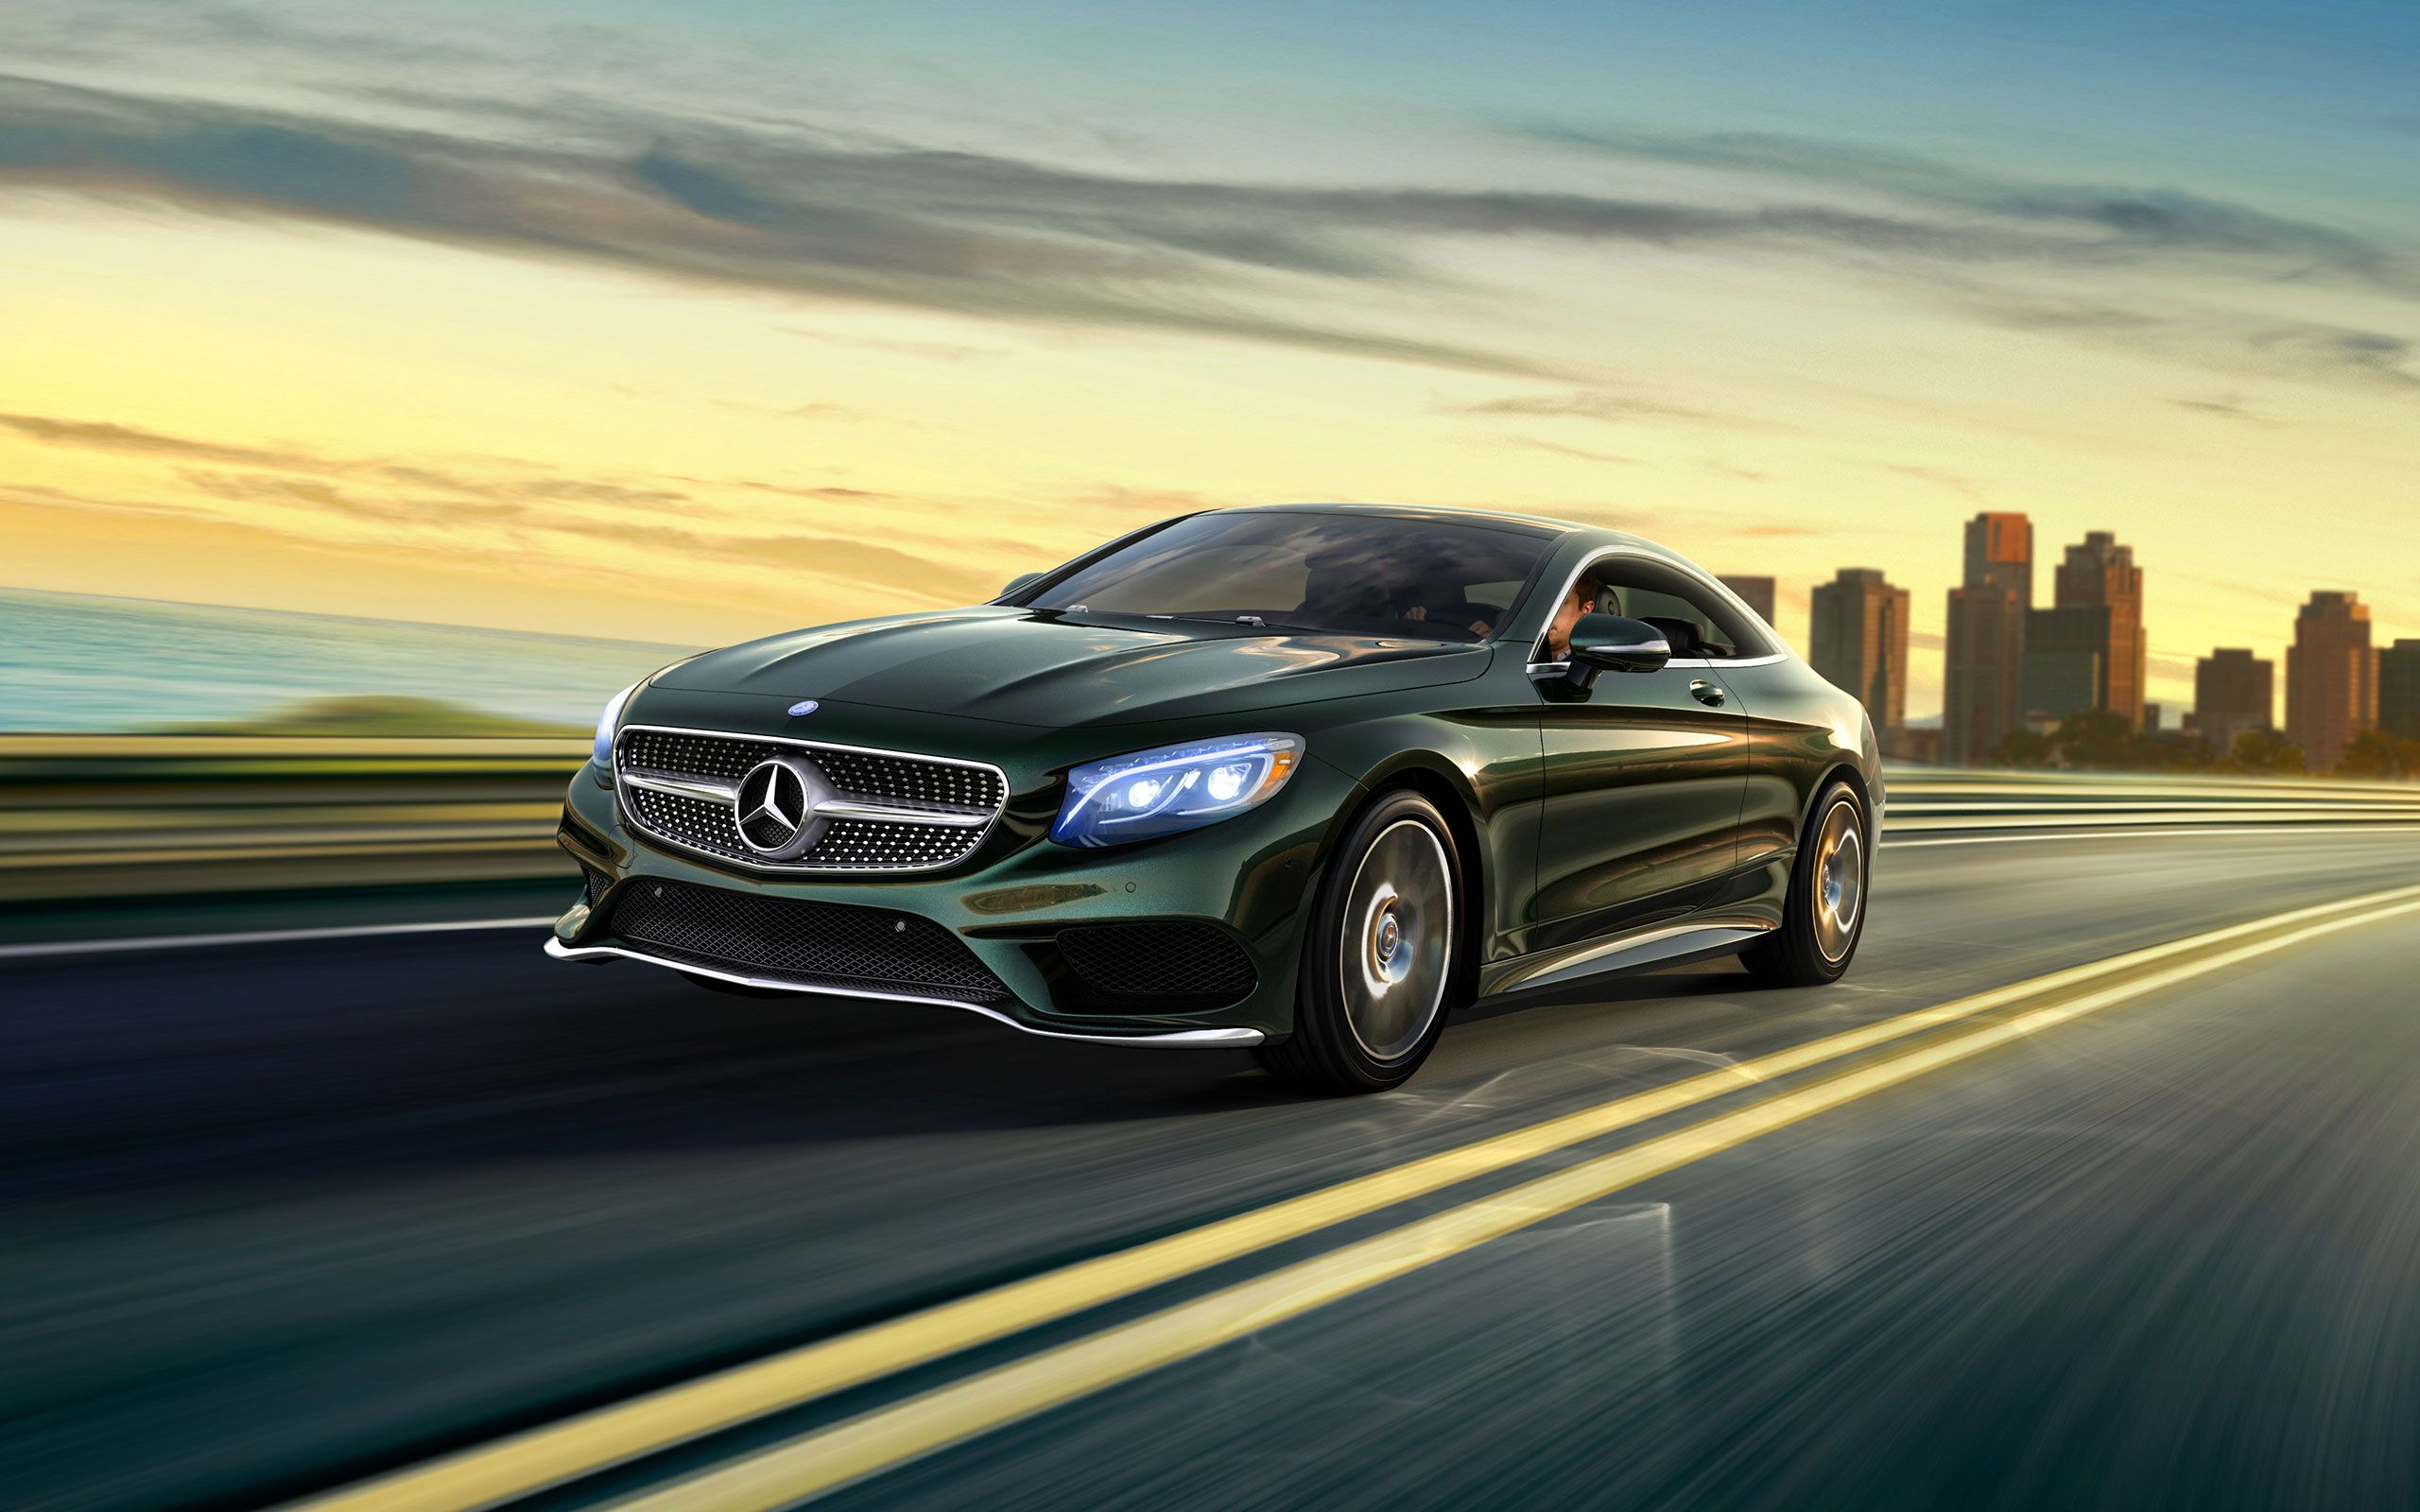 Indexp 25601600 graphy car pinterest mercedes benz why the amg is our favorite 2015 mercedes benz s class model voltagebd Image collections